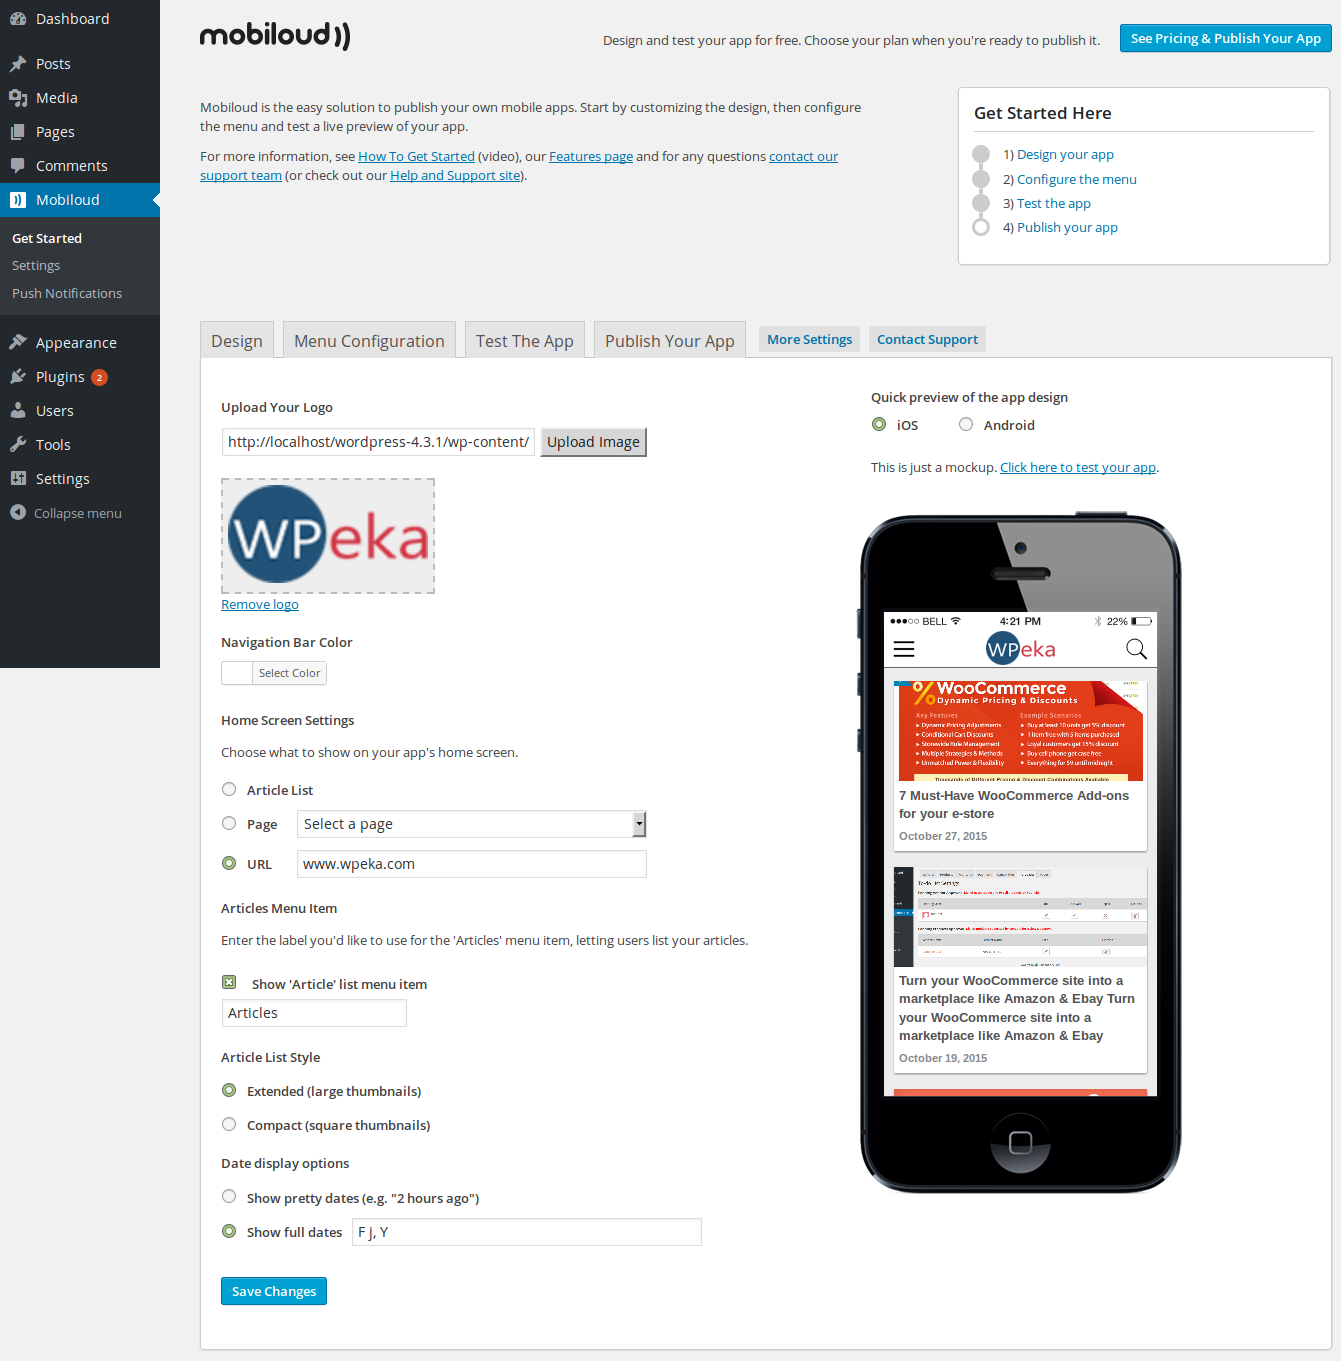 WordPress site into Android and iOS apps Mobiloud - Get Started